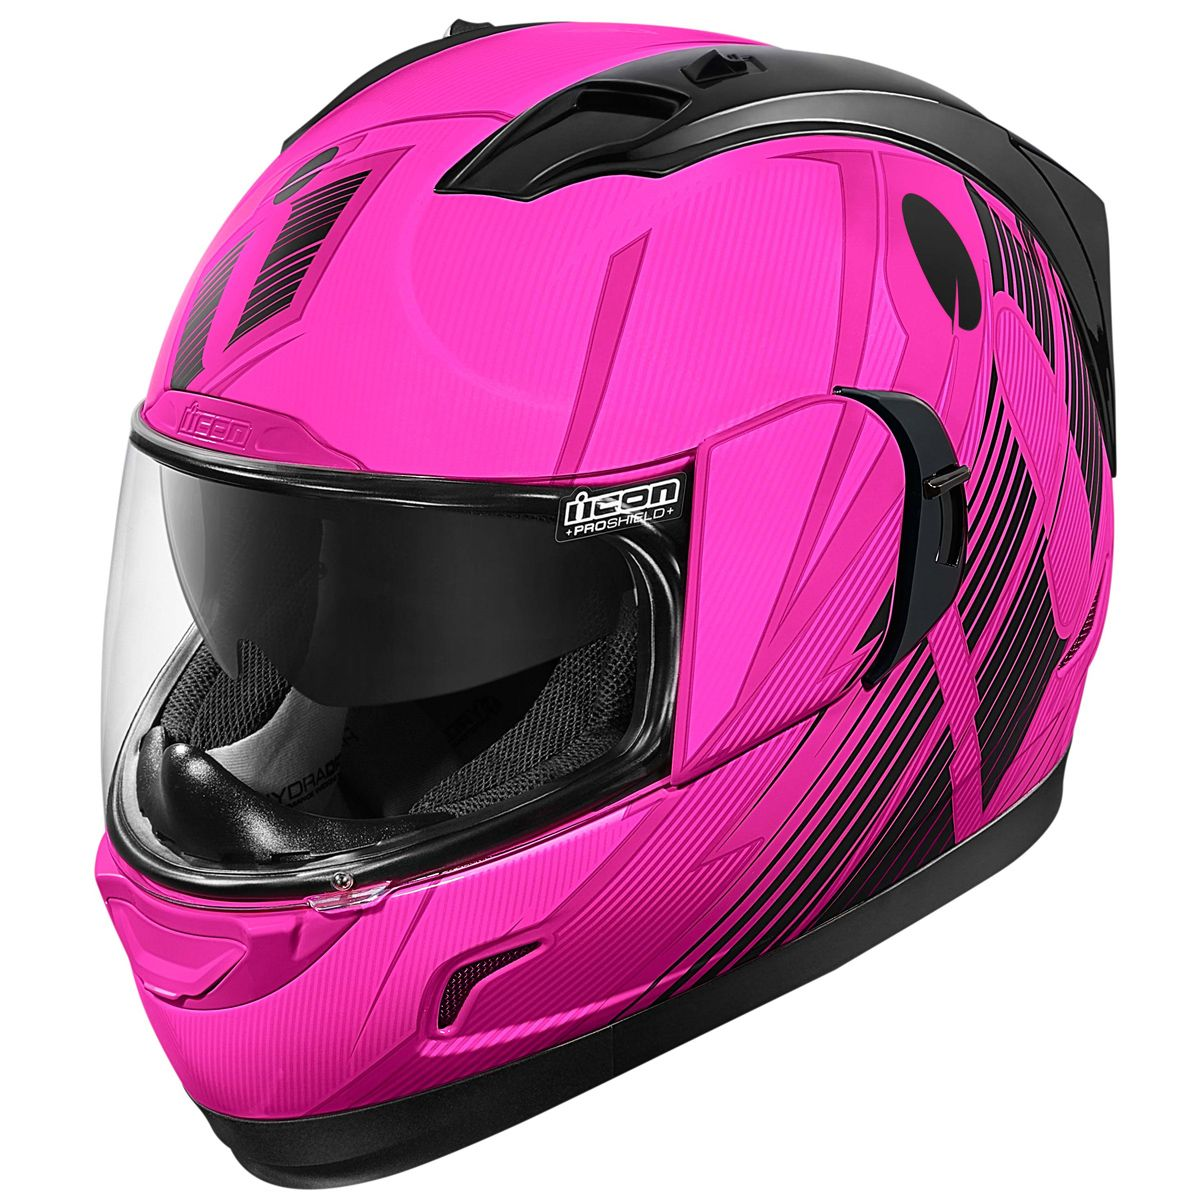 ICON Alliance GT Primary Pink Full Face Helmet – 0101-9016